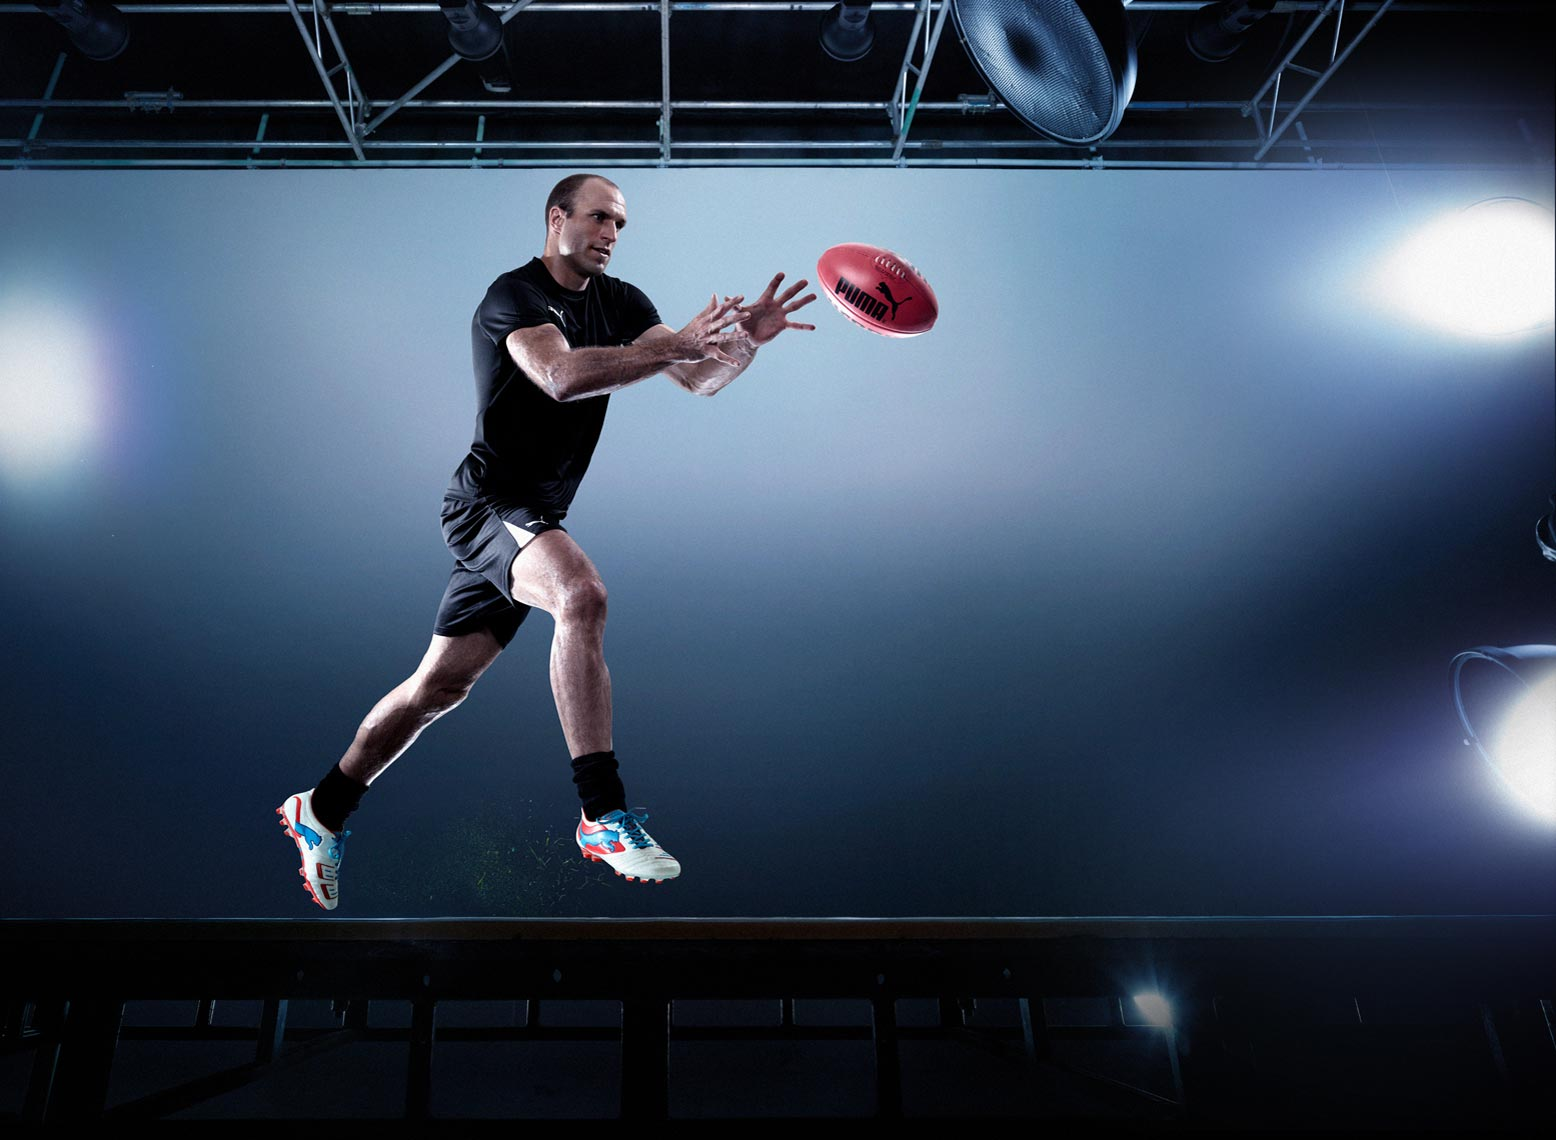 PUMA-Chris-Judd.jpg